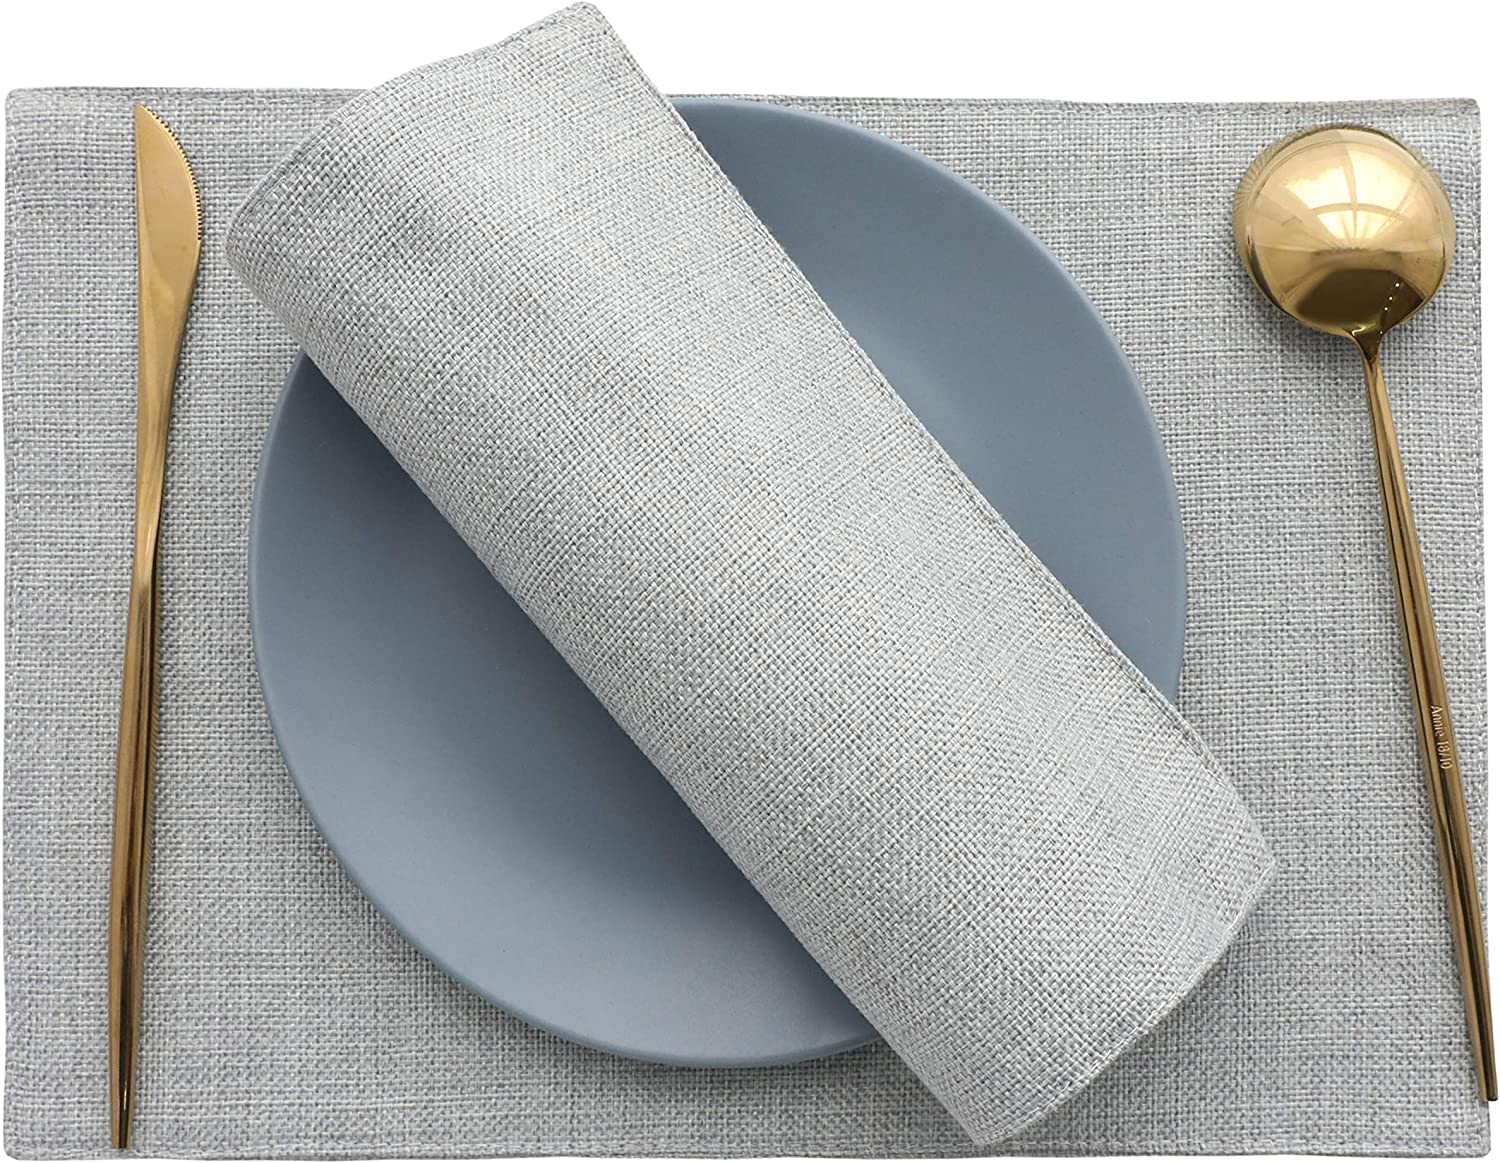 HOME BRILLIANT Placemats Set of 4 Heat Resistant Washable Placemats for Parties Buffet Dinner, 13 x 19 inches, Light Grey